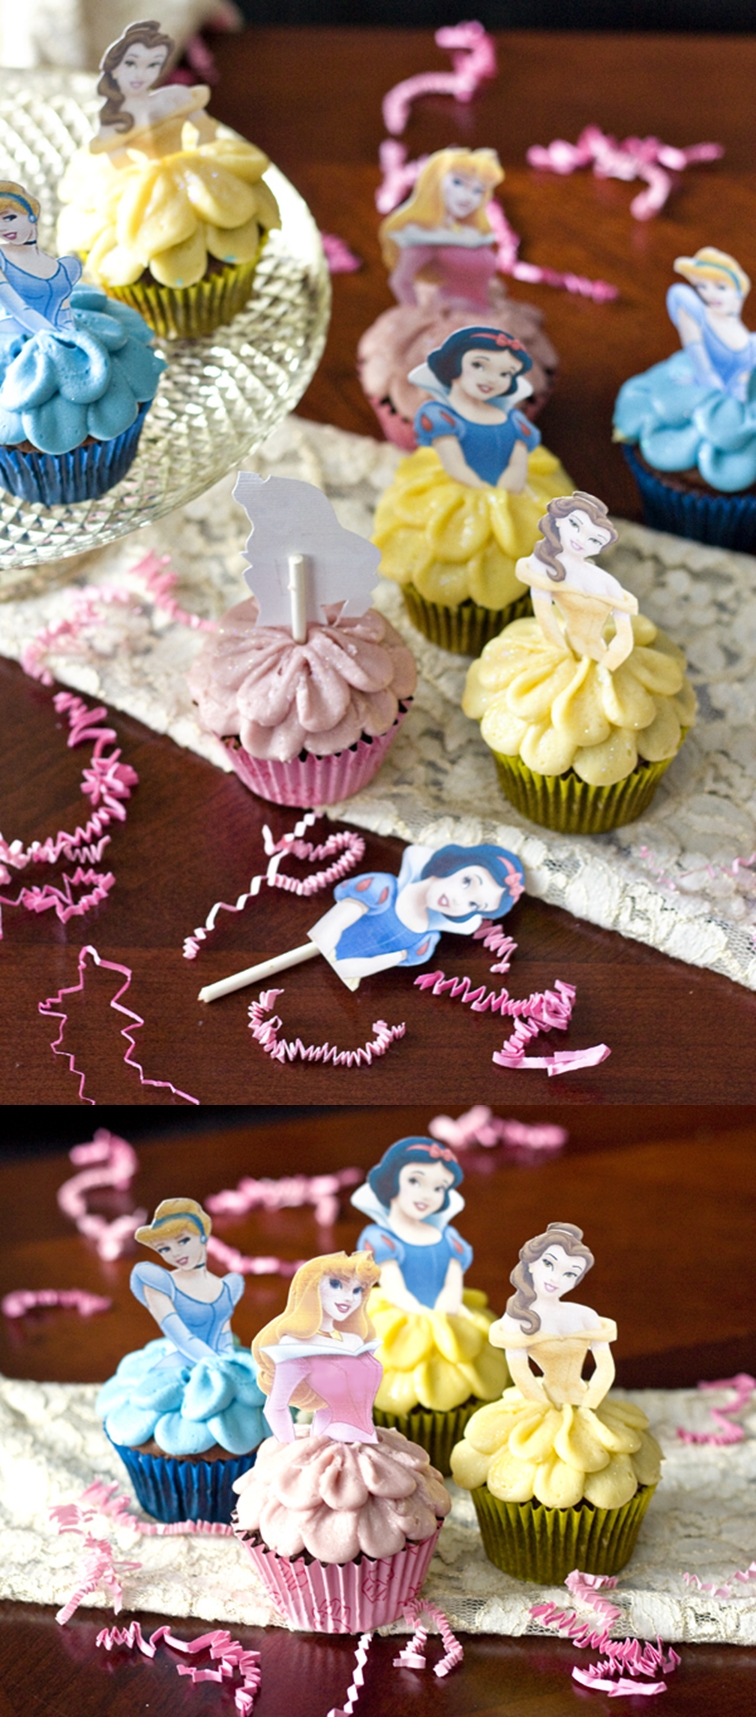 VIEW IN GALLERY Disney Princess Cake M Wonderful DIY Cupcakes